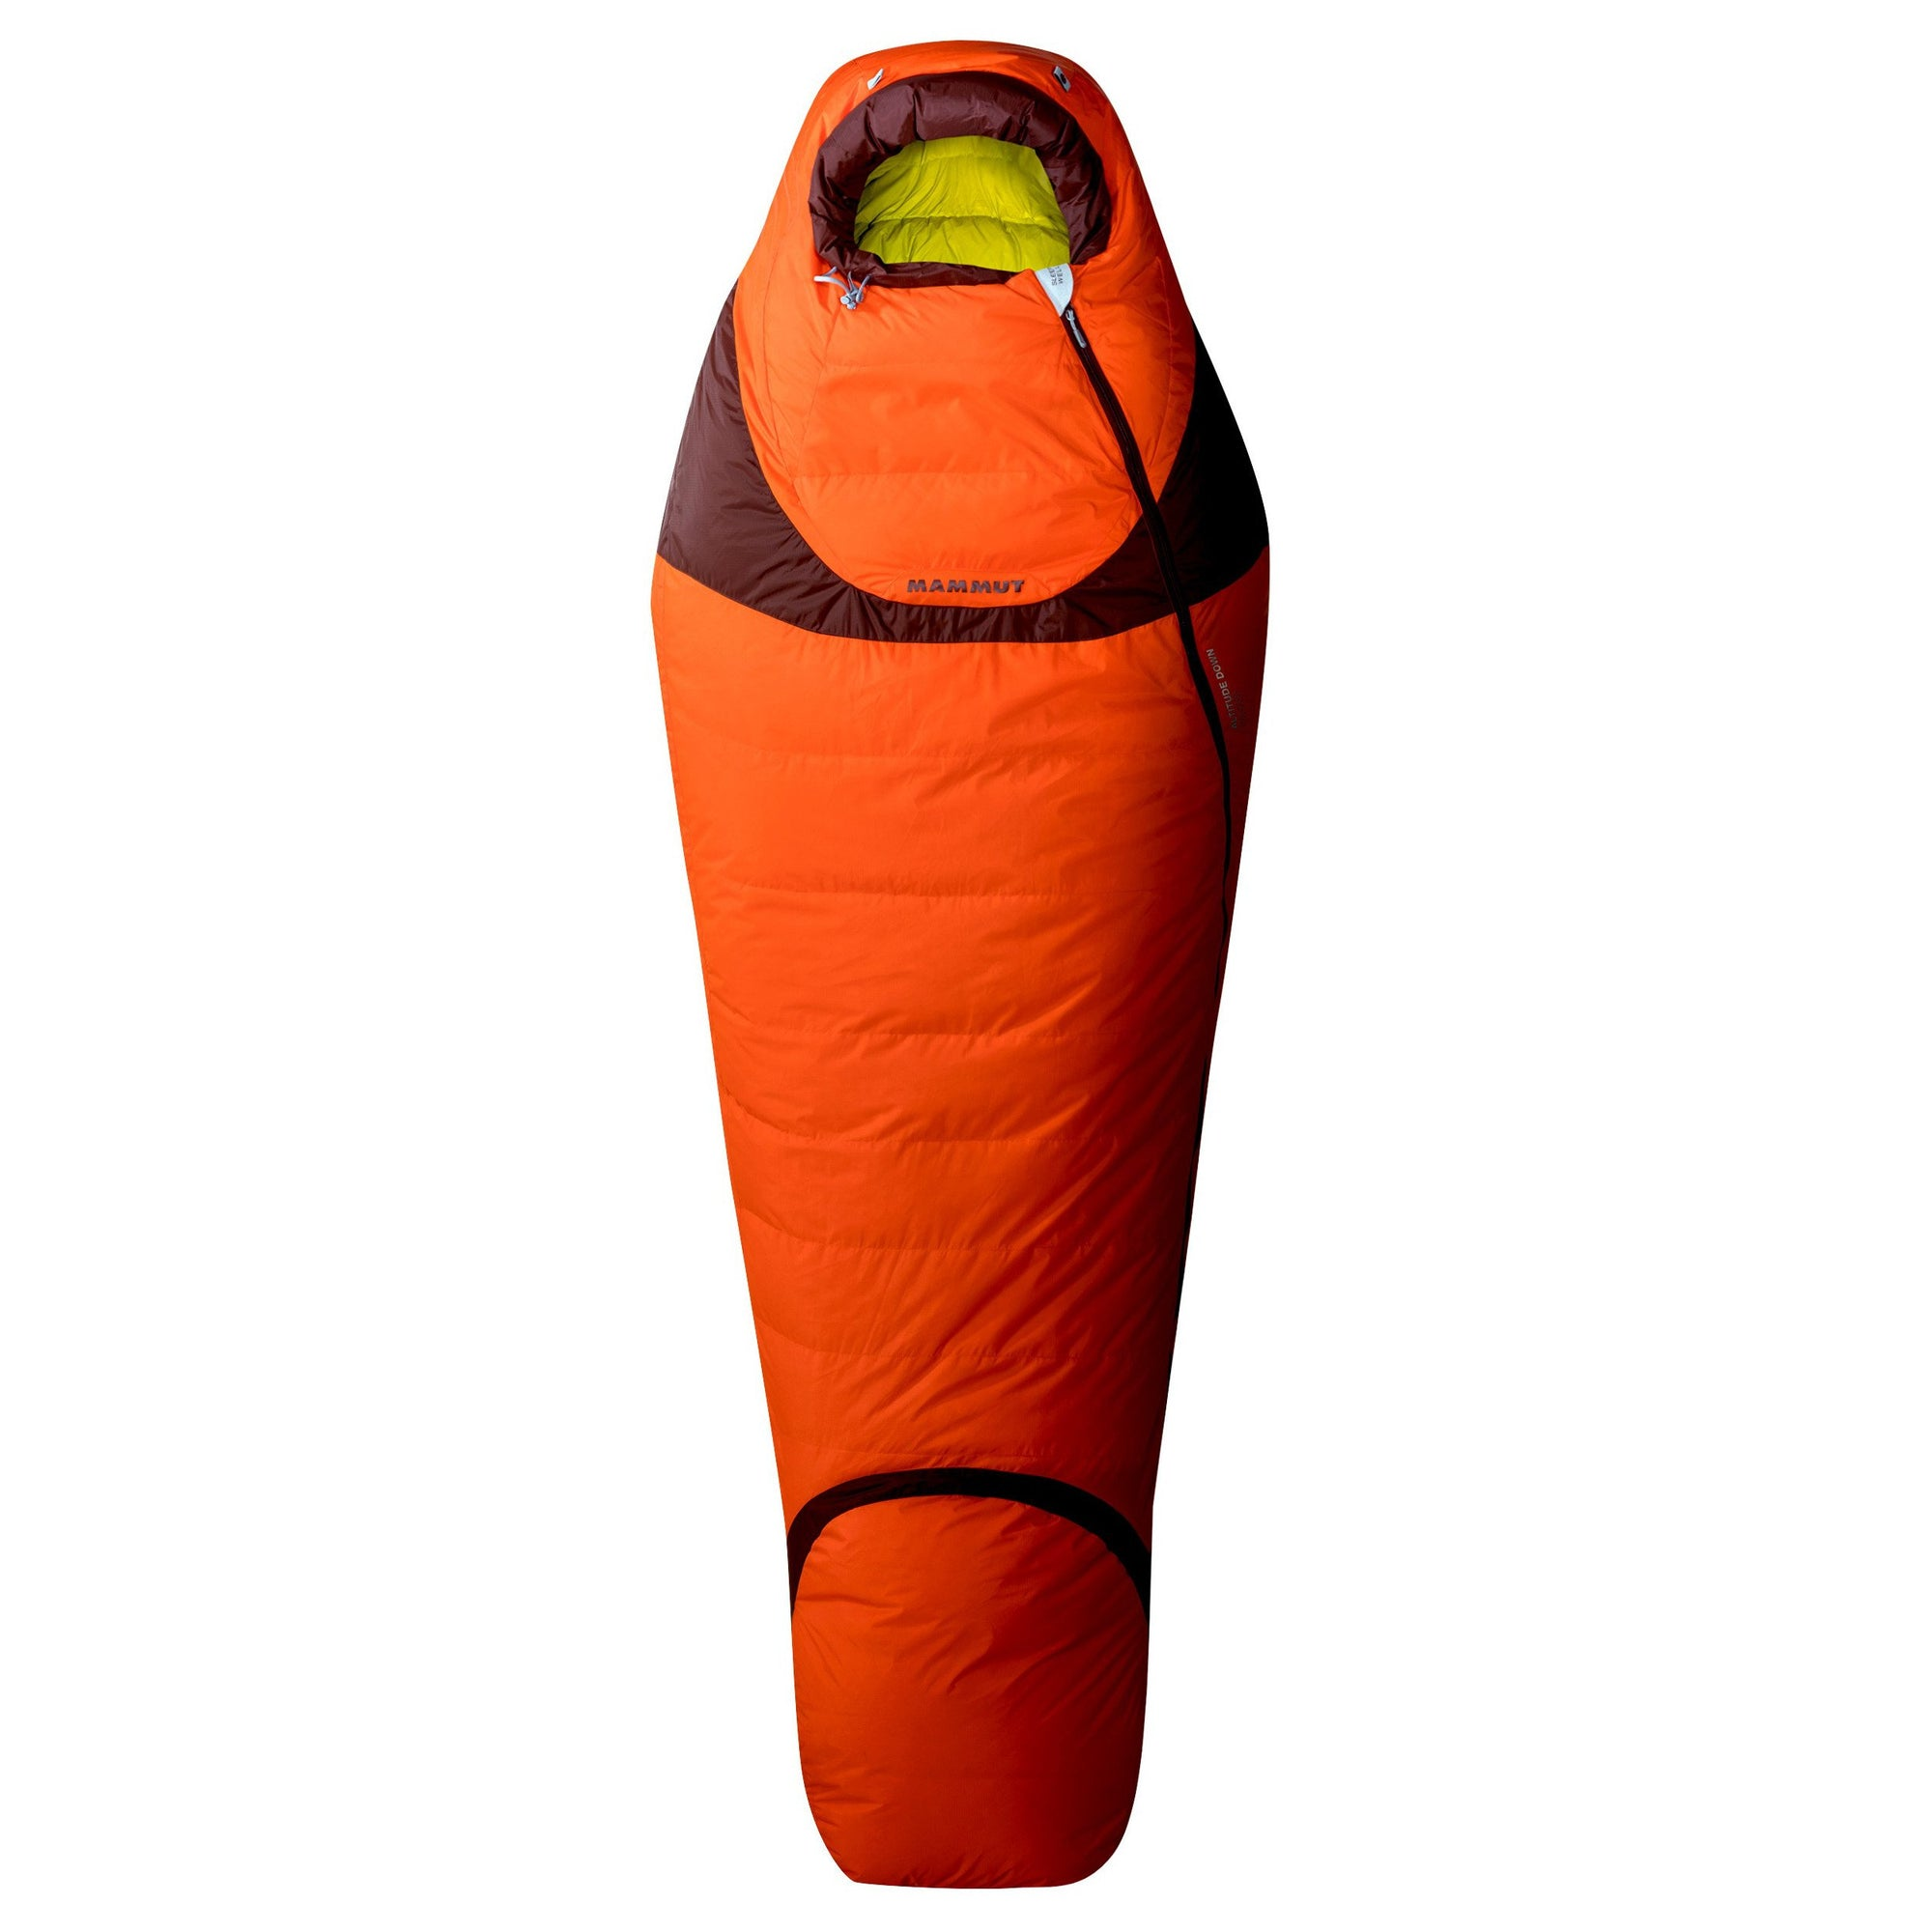 Mammut Altitude Down Winter shown laid flat and fully closed, in orange colour